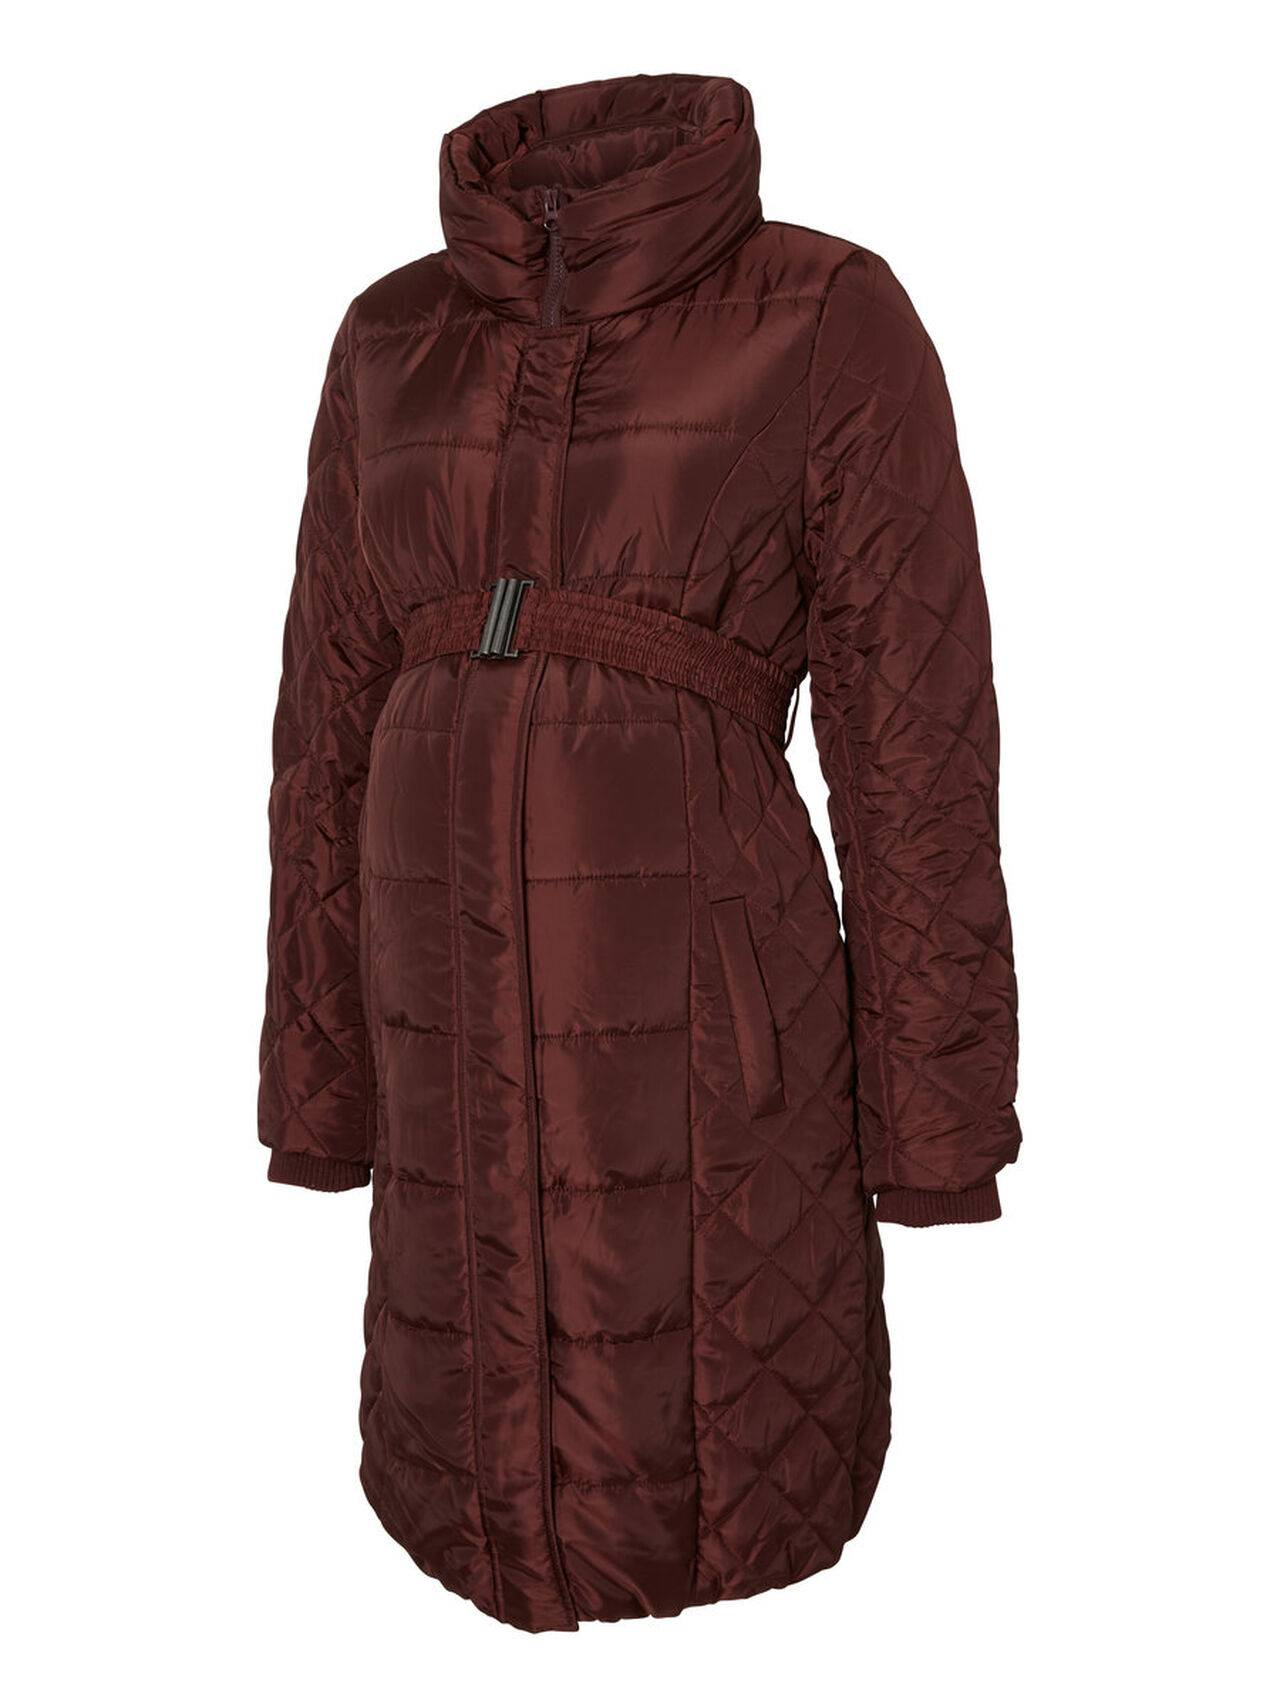 Mama.licious Padded Maternity Jacket Fudge